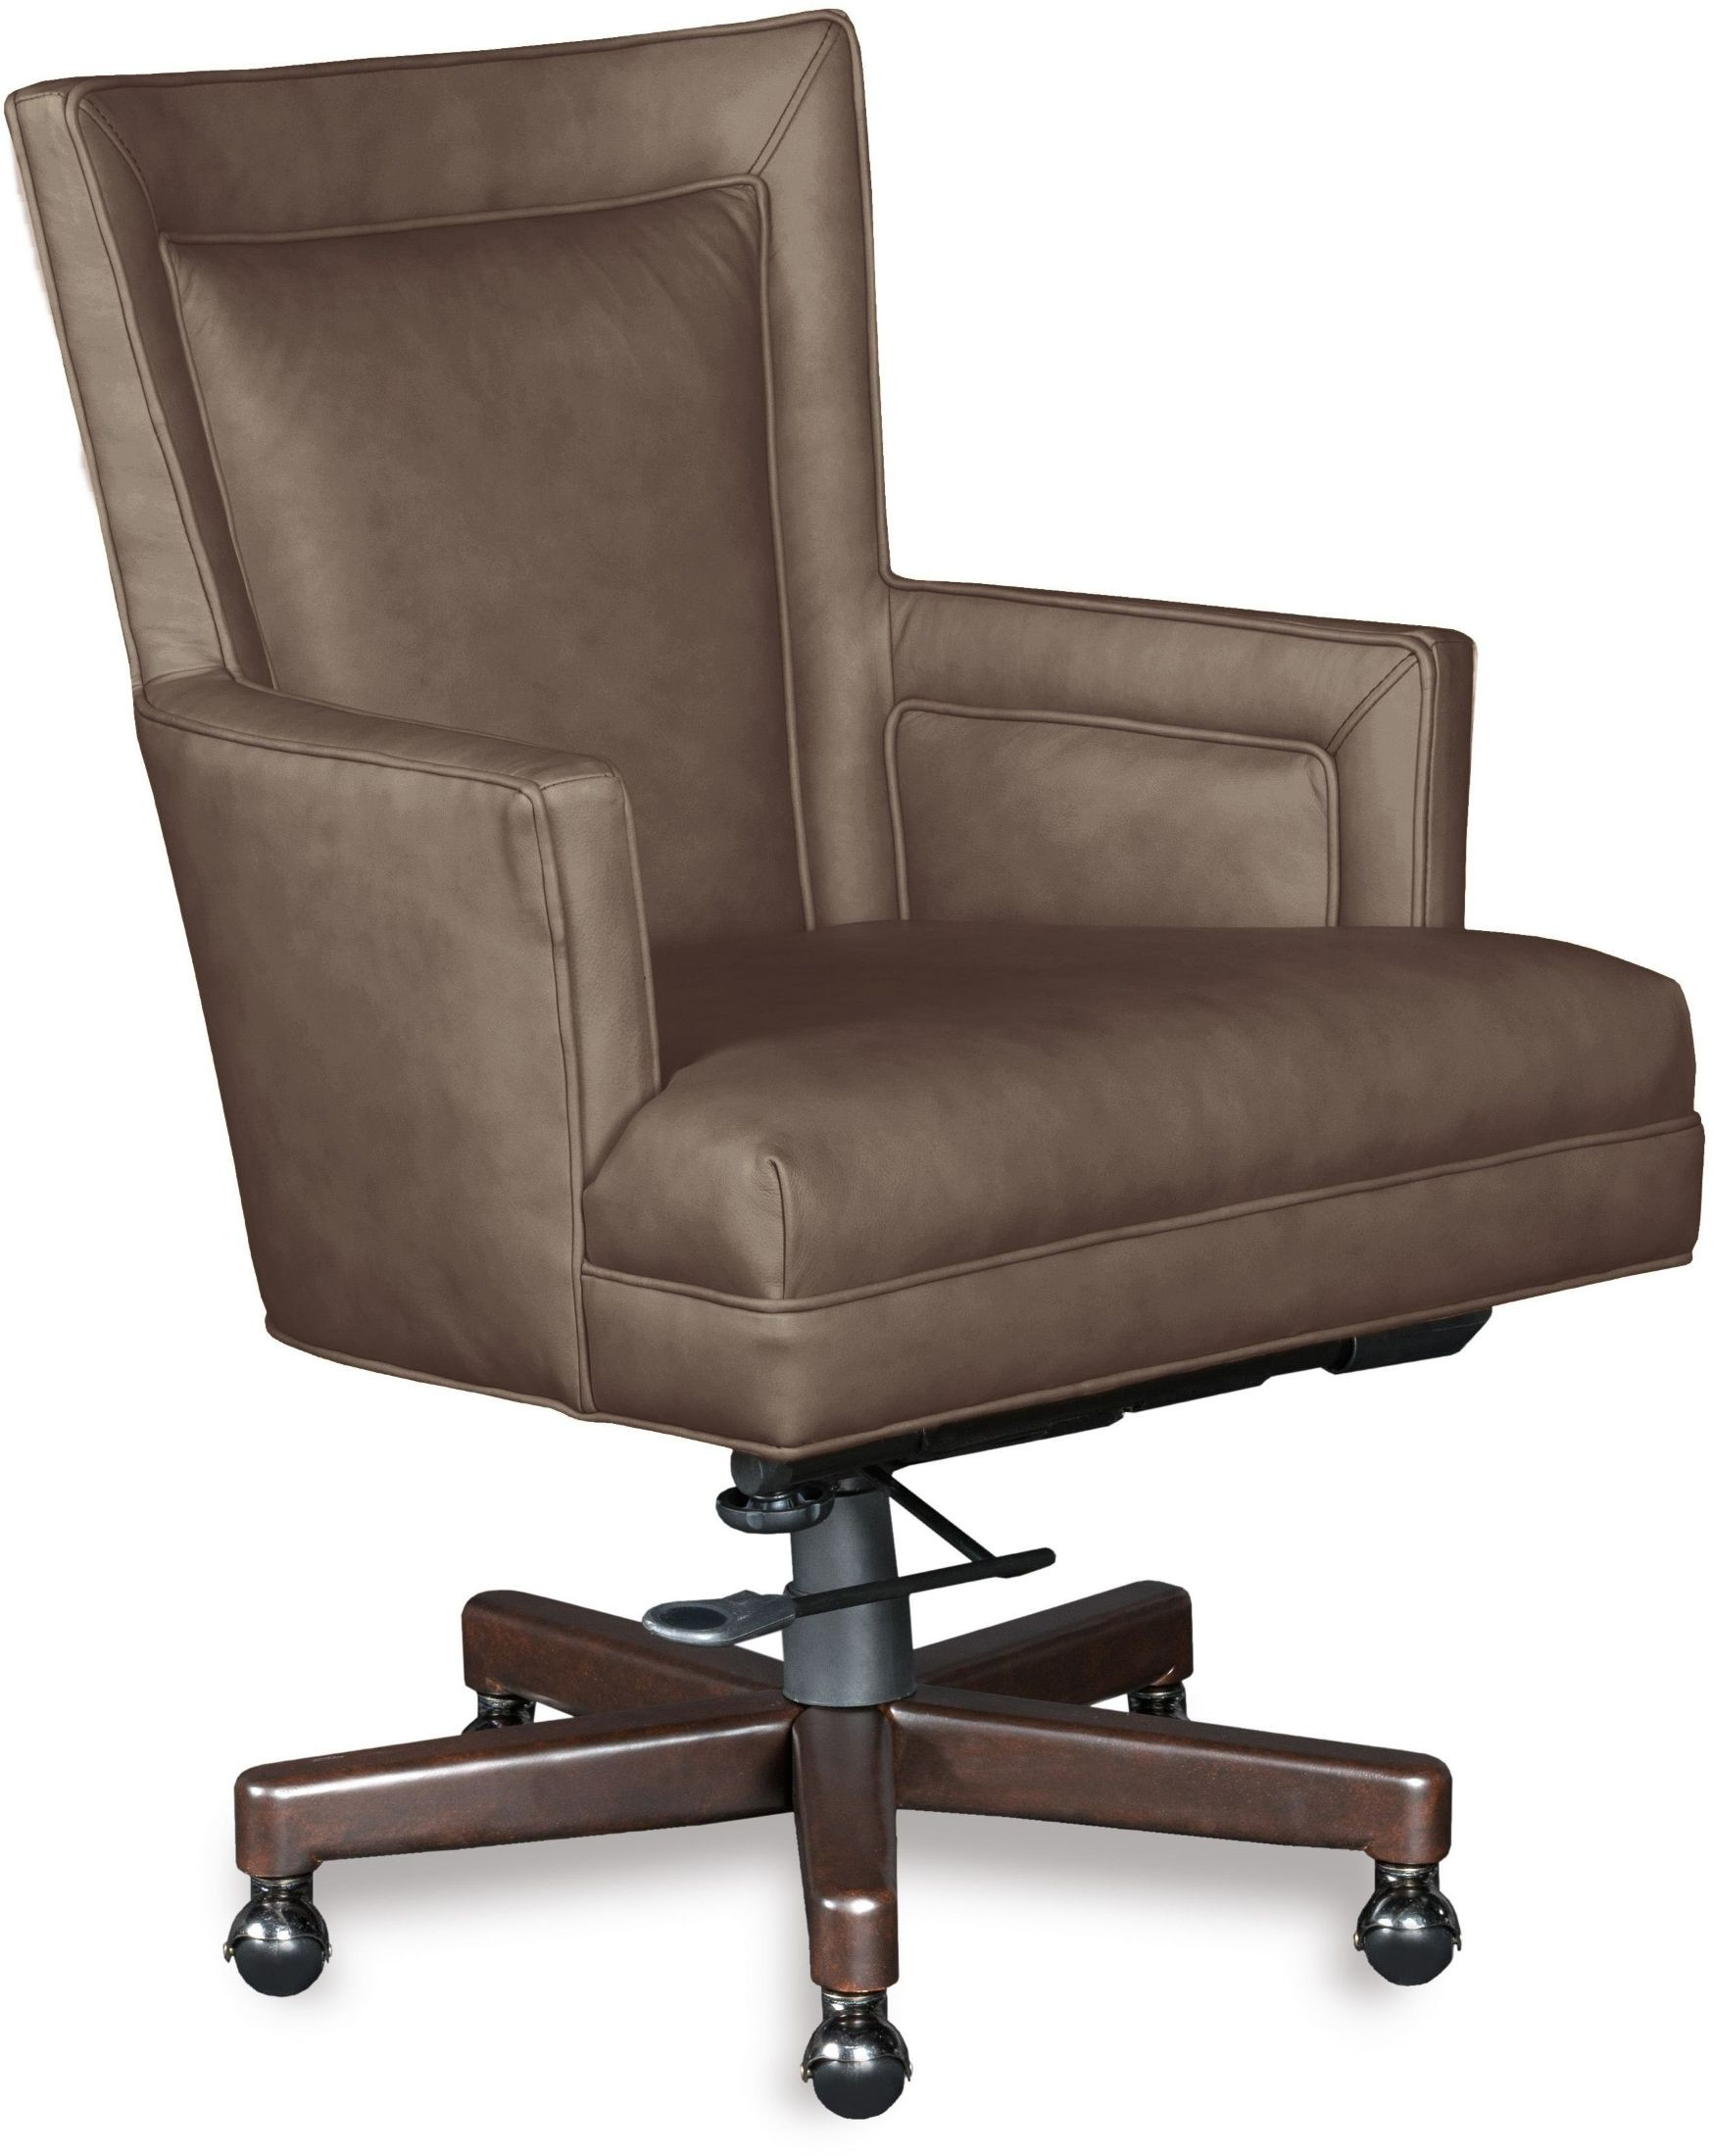 maroon office chairs wicker bar rosa beige leather home chair from hooker coleman